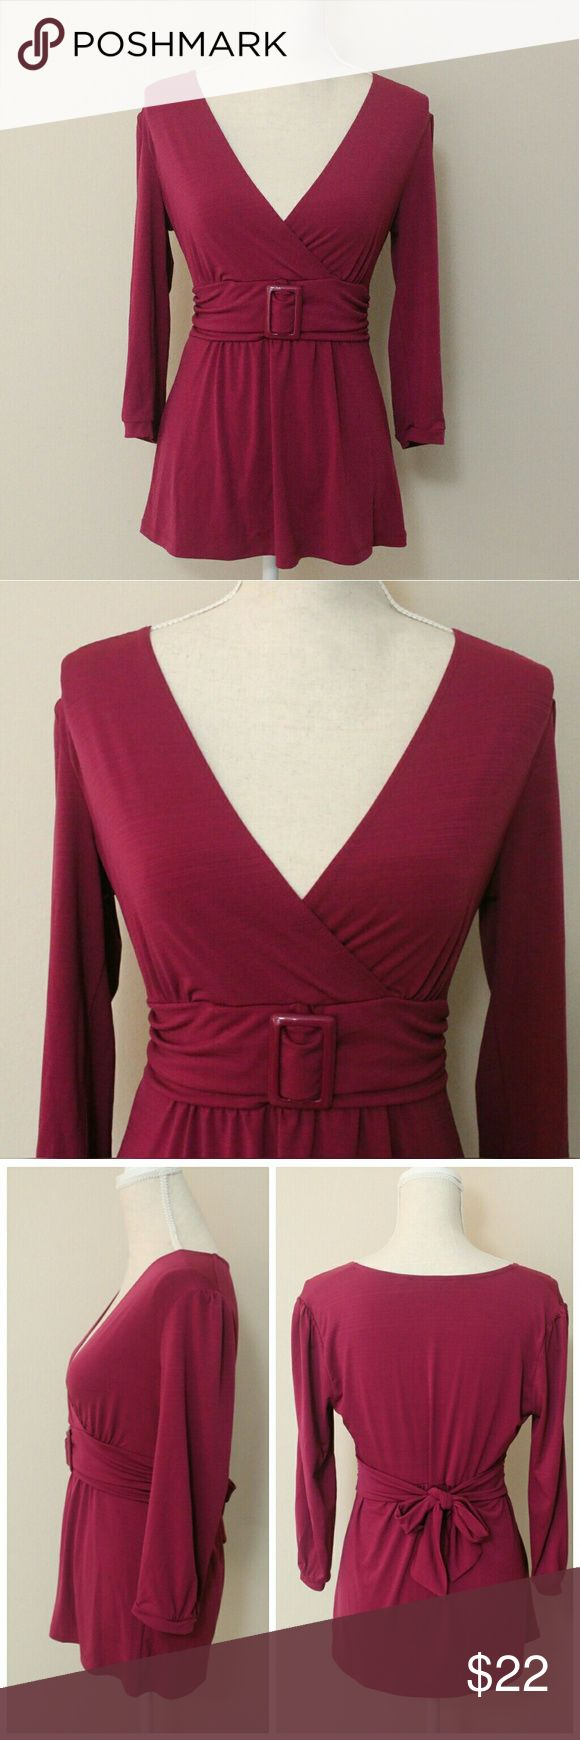 """Apt 9 Dressy Magenta Self Belt Tunic Top Size S NWOT Dressy Tunic Top with Self Belt and Bow Tie Back from Apt 9. Beautiful magenta color. Very flattering top. Looks amazing with leggings and so perfect for Fall. Thick stretchy material. 96% polyester, 4% spandex. 3/4 sleeve. Only tried it on once.   ℹ Chest 16"""" measured flat across pit to pit ℹ Sleeve 17.5""""  ℹ Length 25.5"""" from shoulder to hem  ℹ Fits great both Small and Medium Apt. 9 Tops Tunics"""